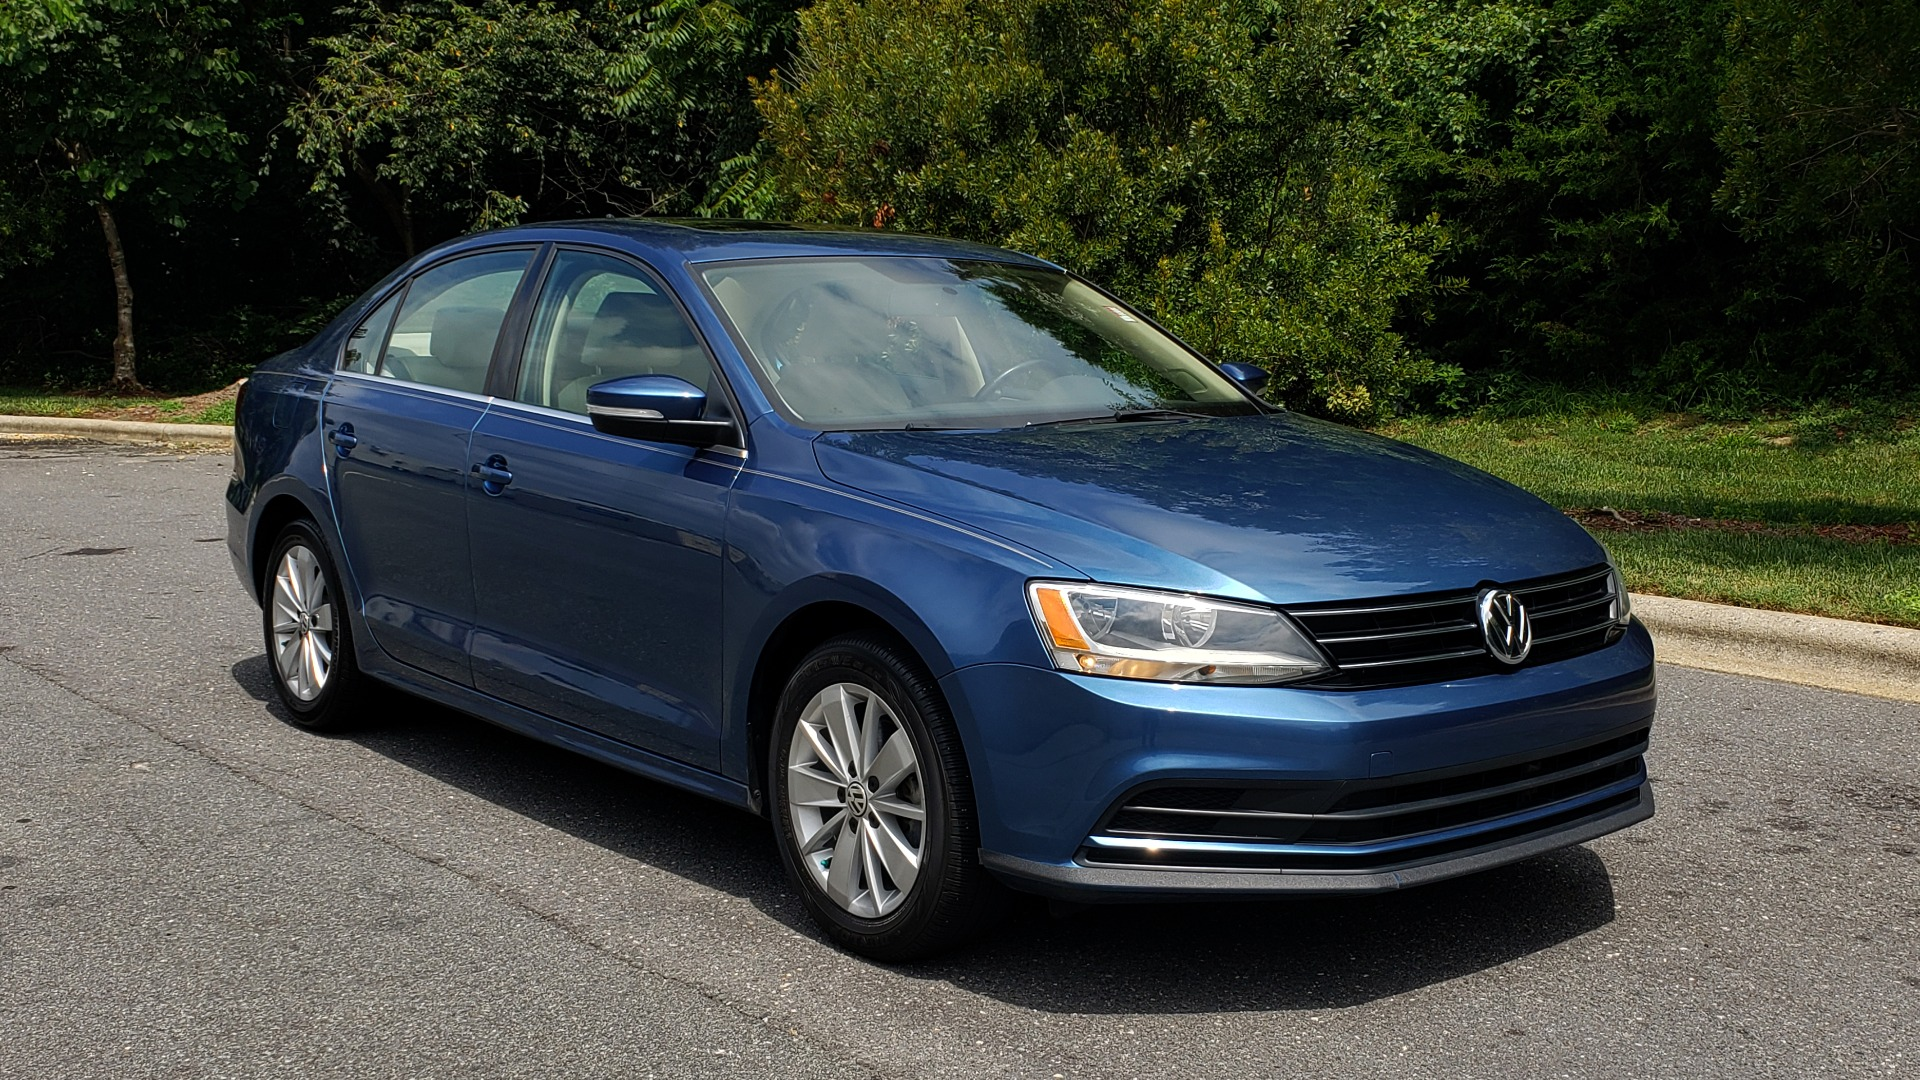 Used 2016 Volkswagen JETTA SEDAN 1.4T SE W/ CONNECTIVITY / 6-SPD AUTO / HTD STS / SUNROOF / REARVIEW for sale Sold at Formula Imports in Charlotte NC 28227 4